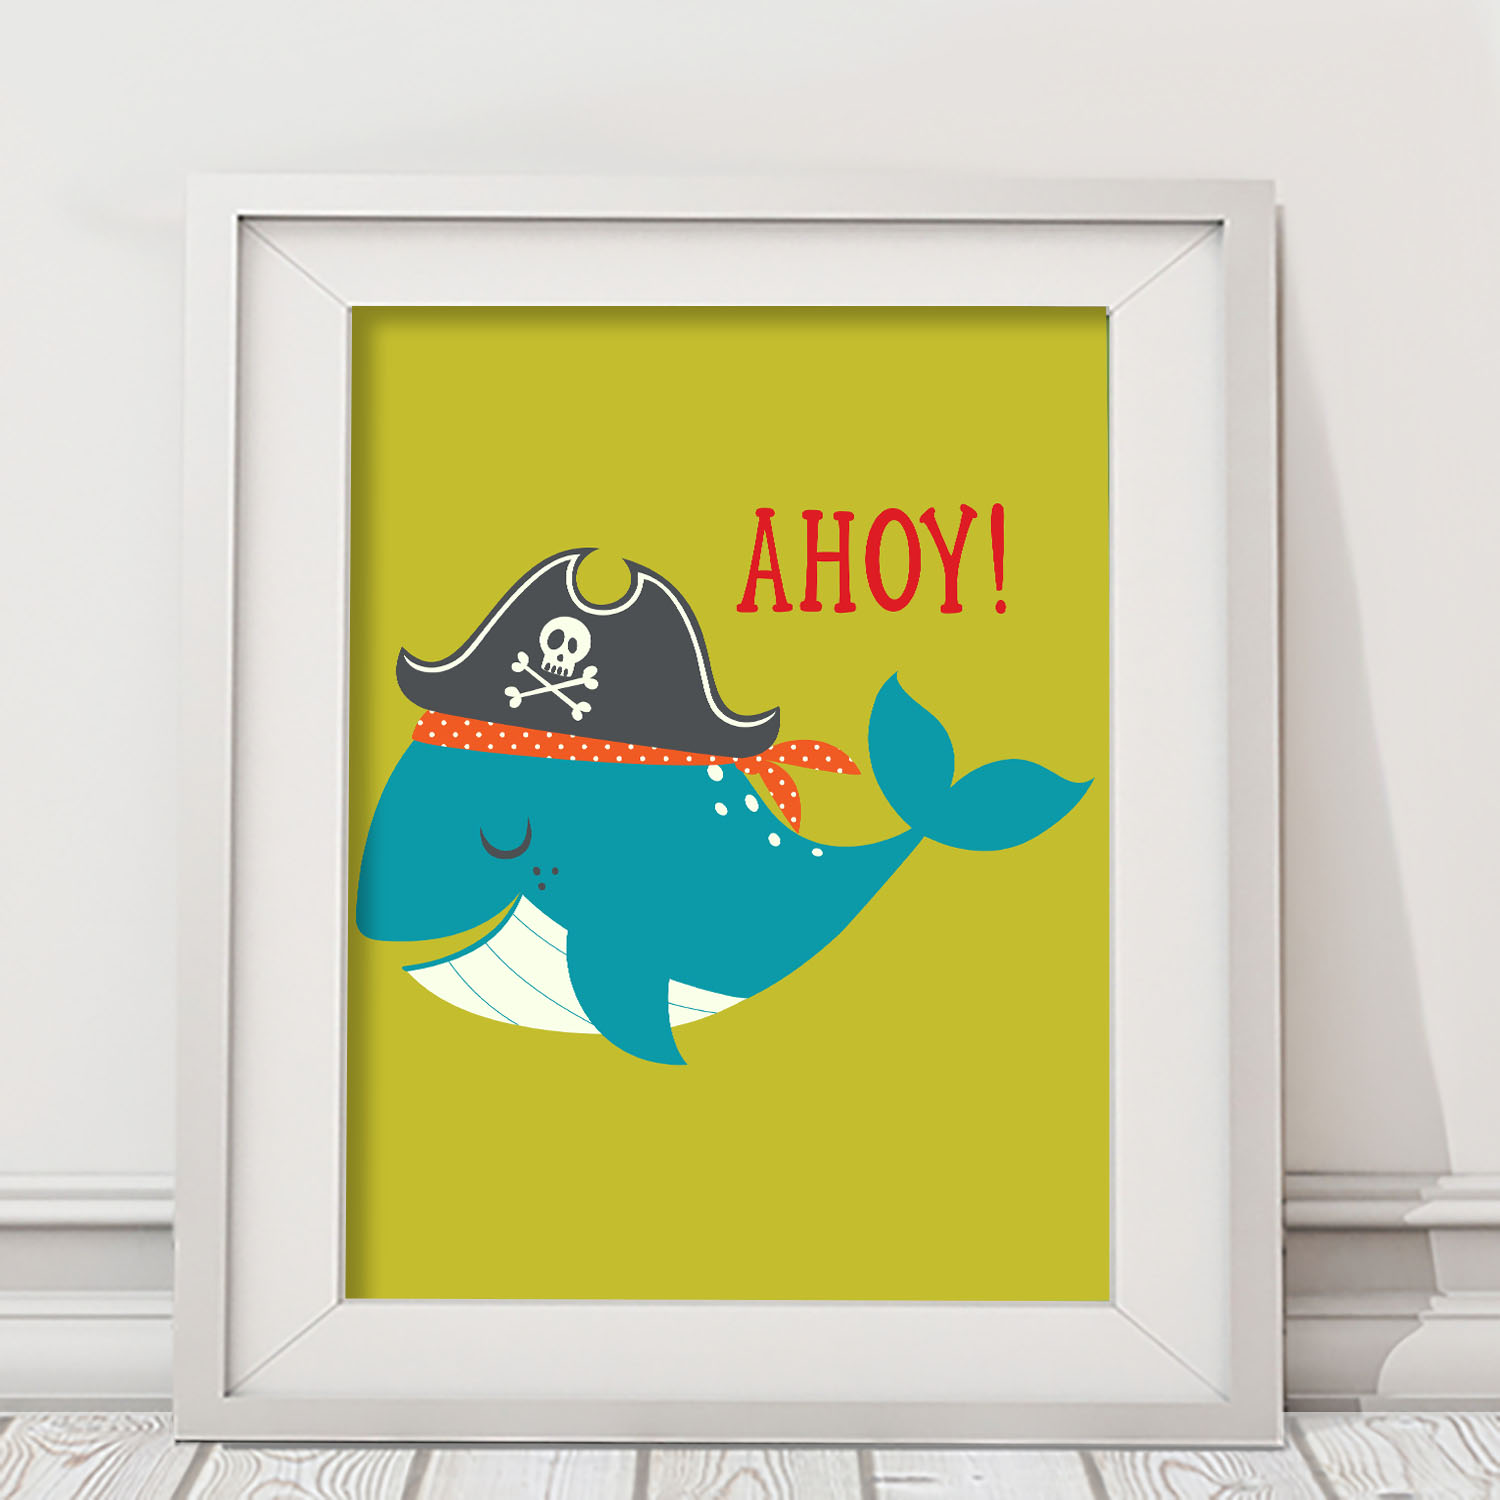 PK11X1400006-AhoyMateyPirateAdventure-WALLART11X14-2 Whale Ahoy Matey! Pirate Adventures Boys Kids Wall Art Prints Room Decor Accessories by Pickleberry Kids